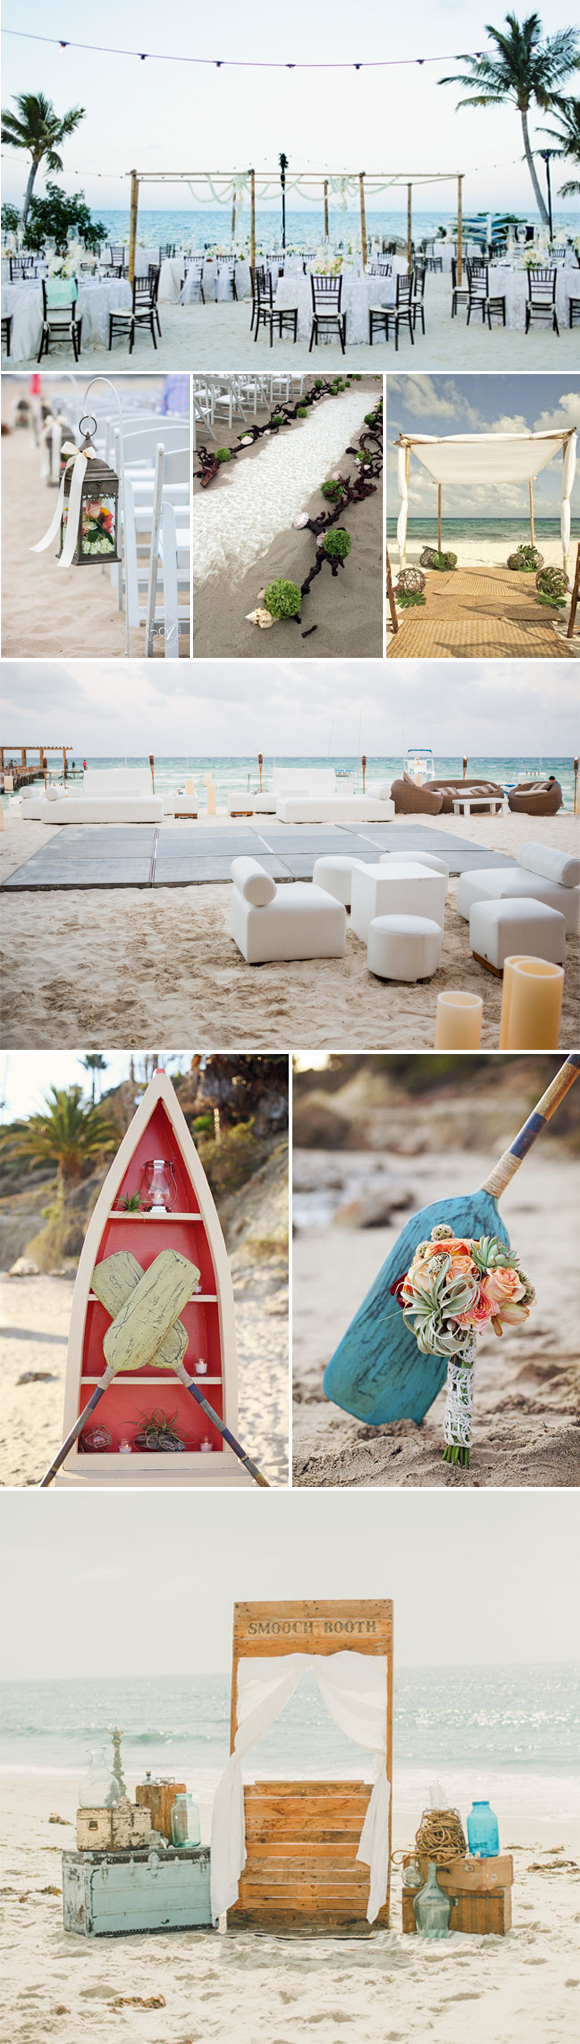 Decoraci n de bodas en la playa - Ideas para una boda en la playa ...